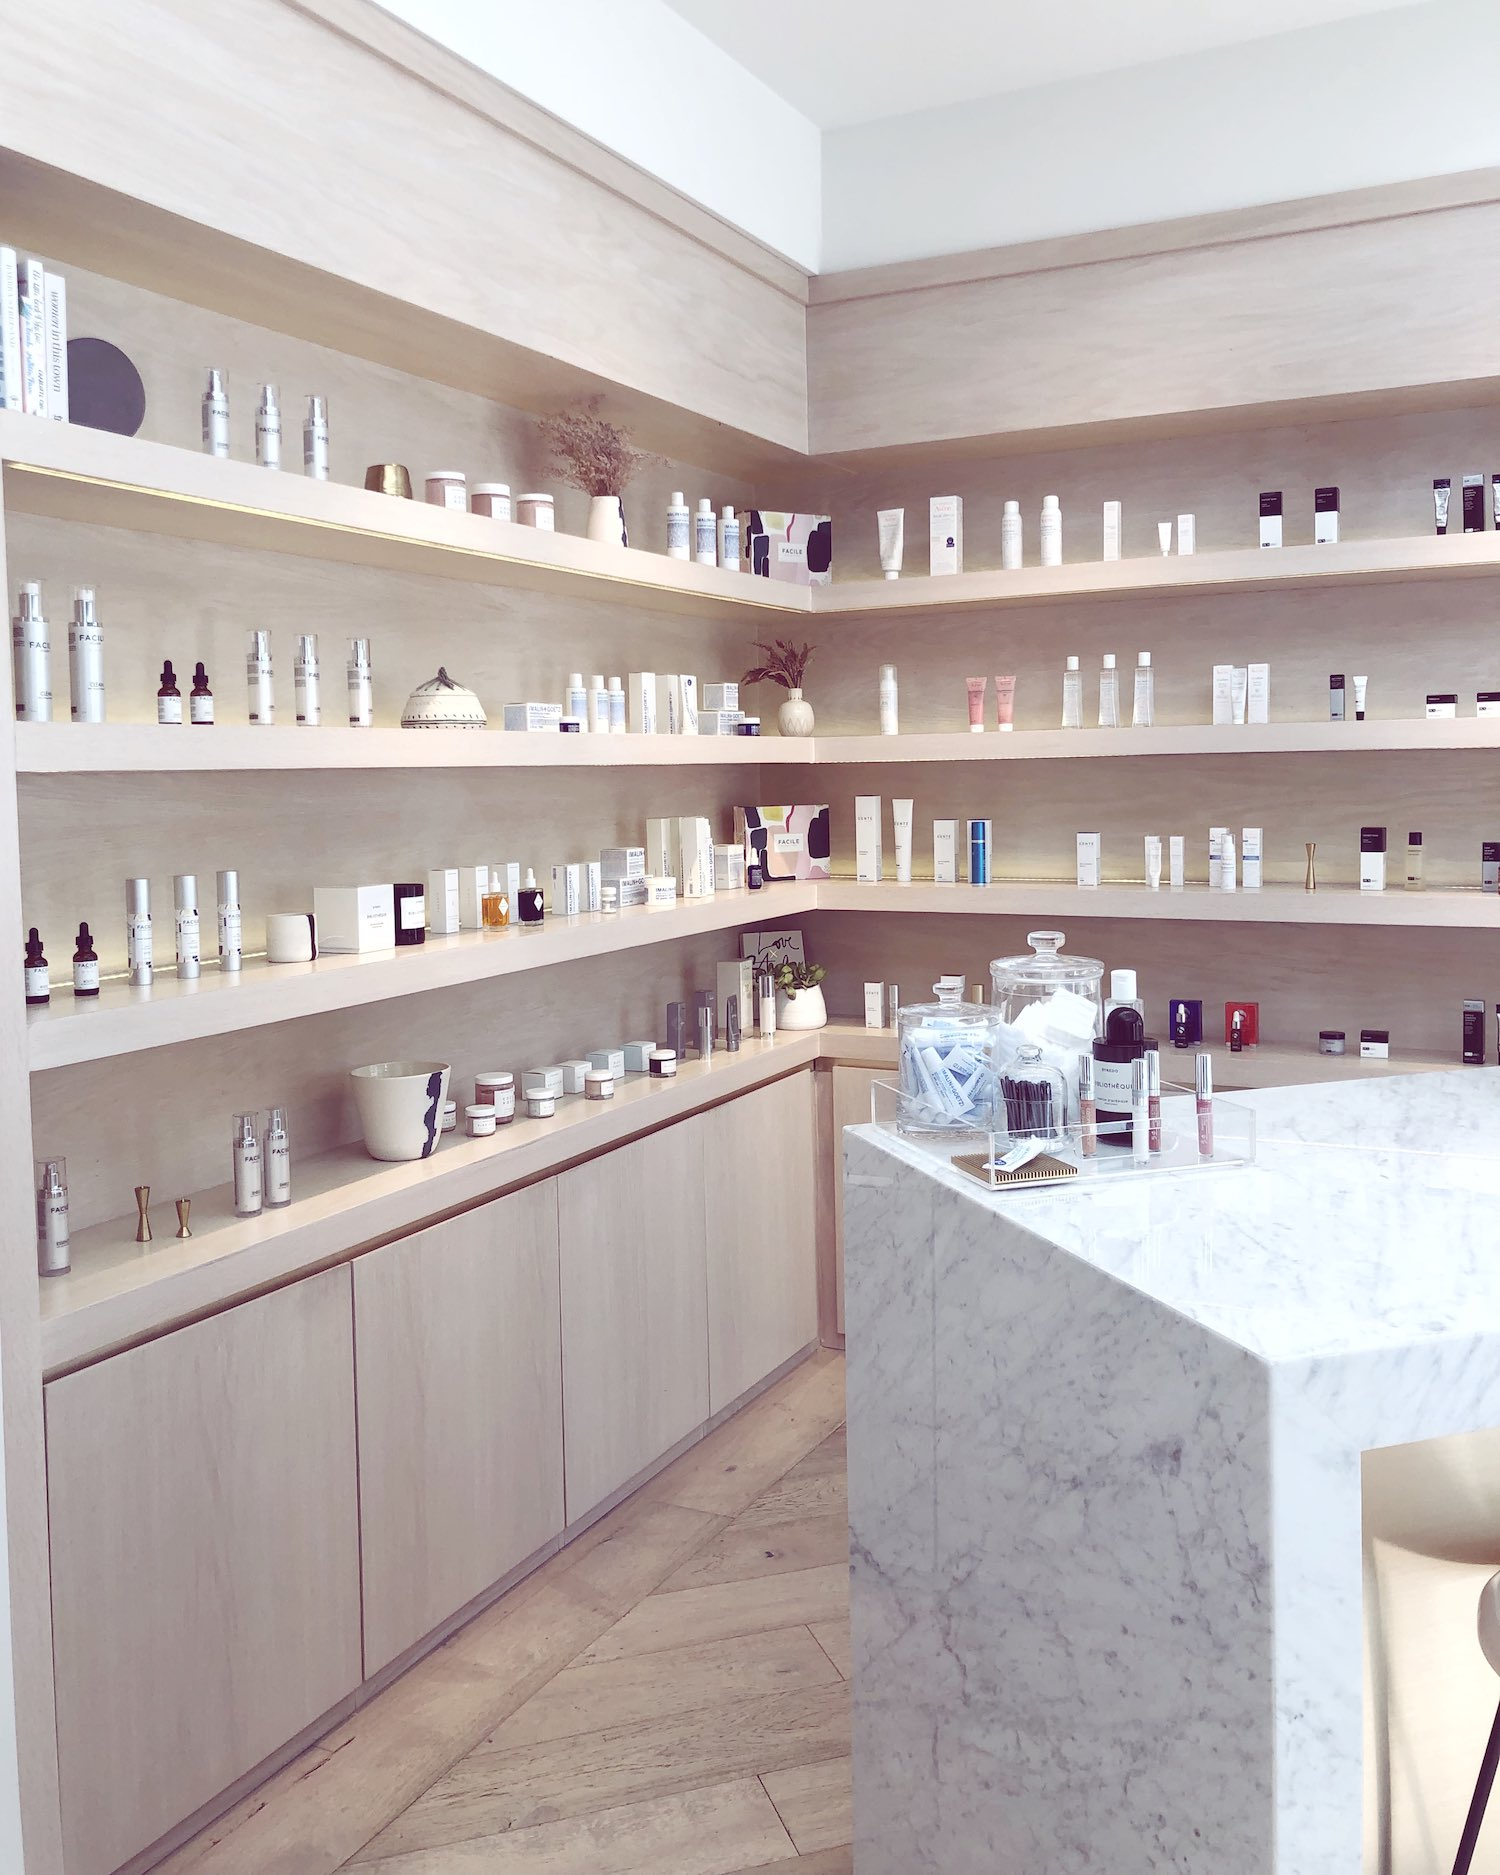 Facile Dermatology Shop West Hollywood